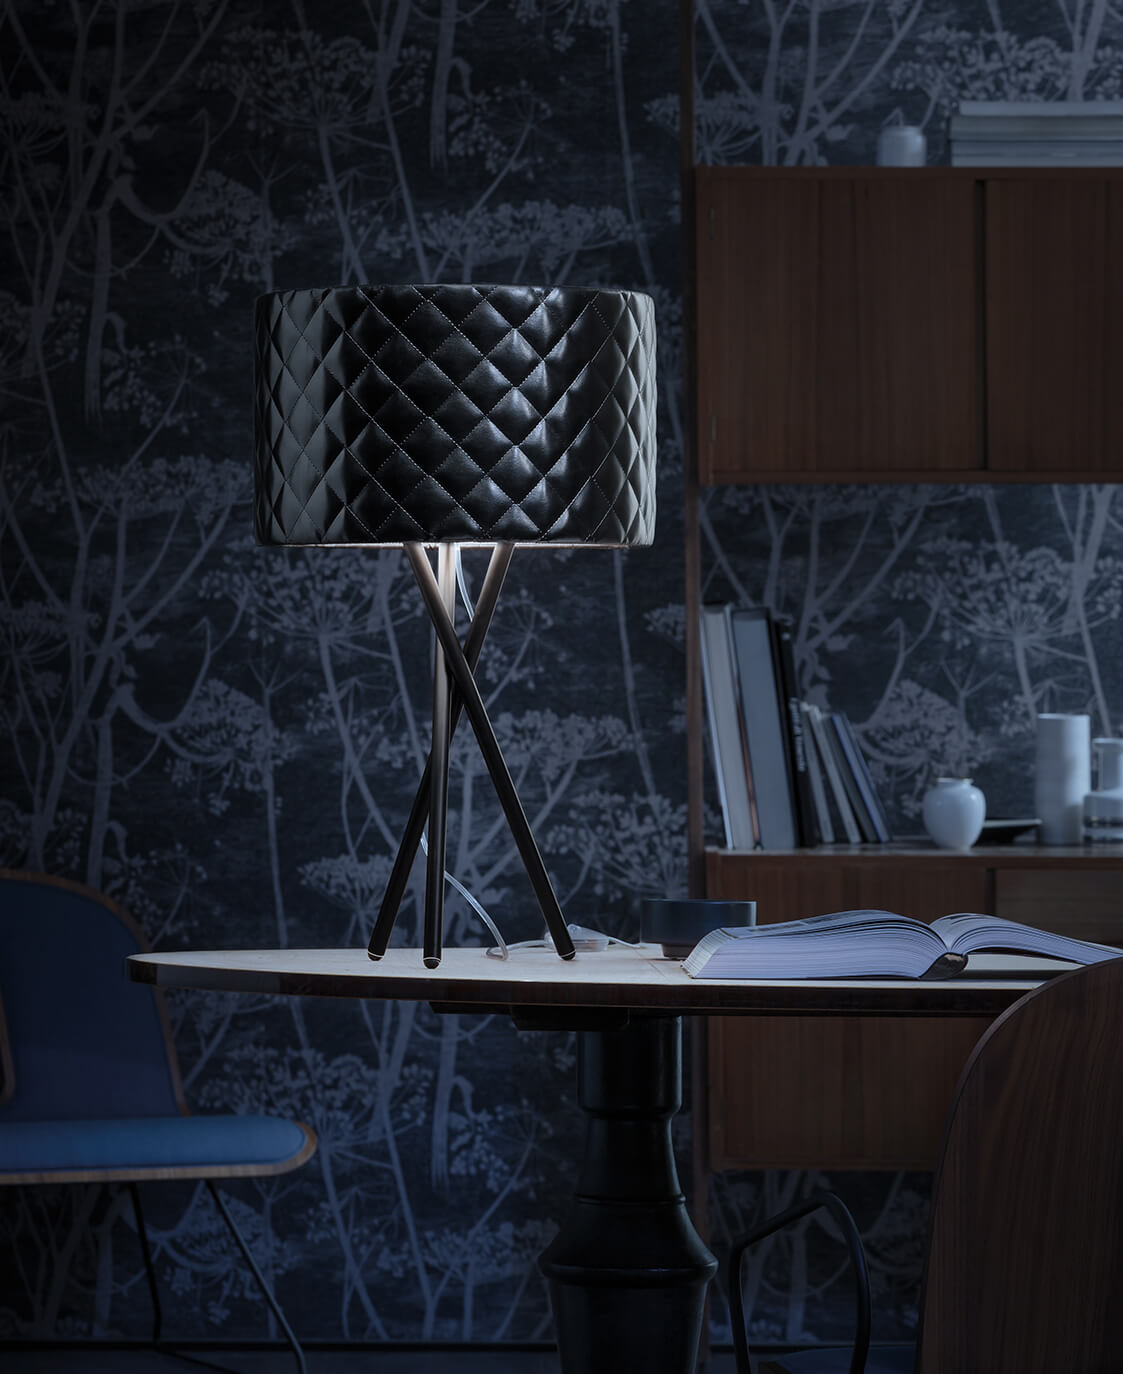 Mariutable1gallery.jpg